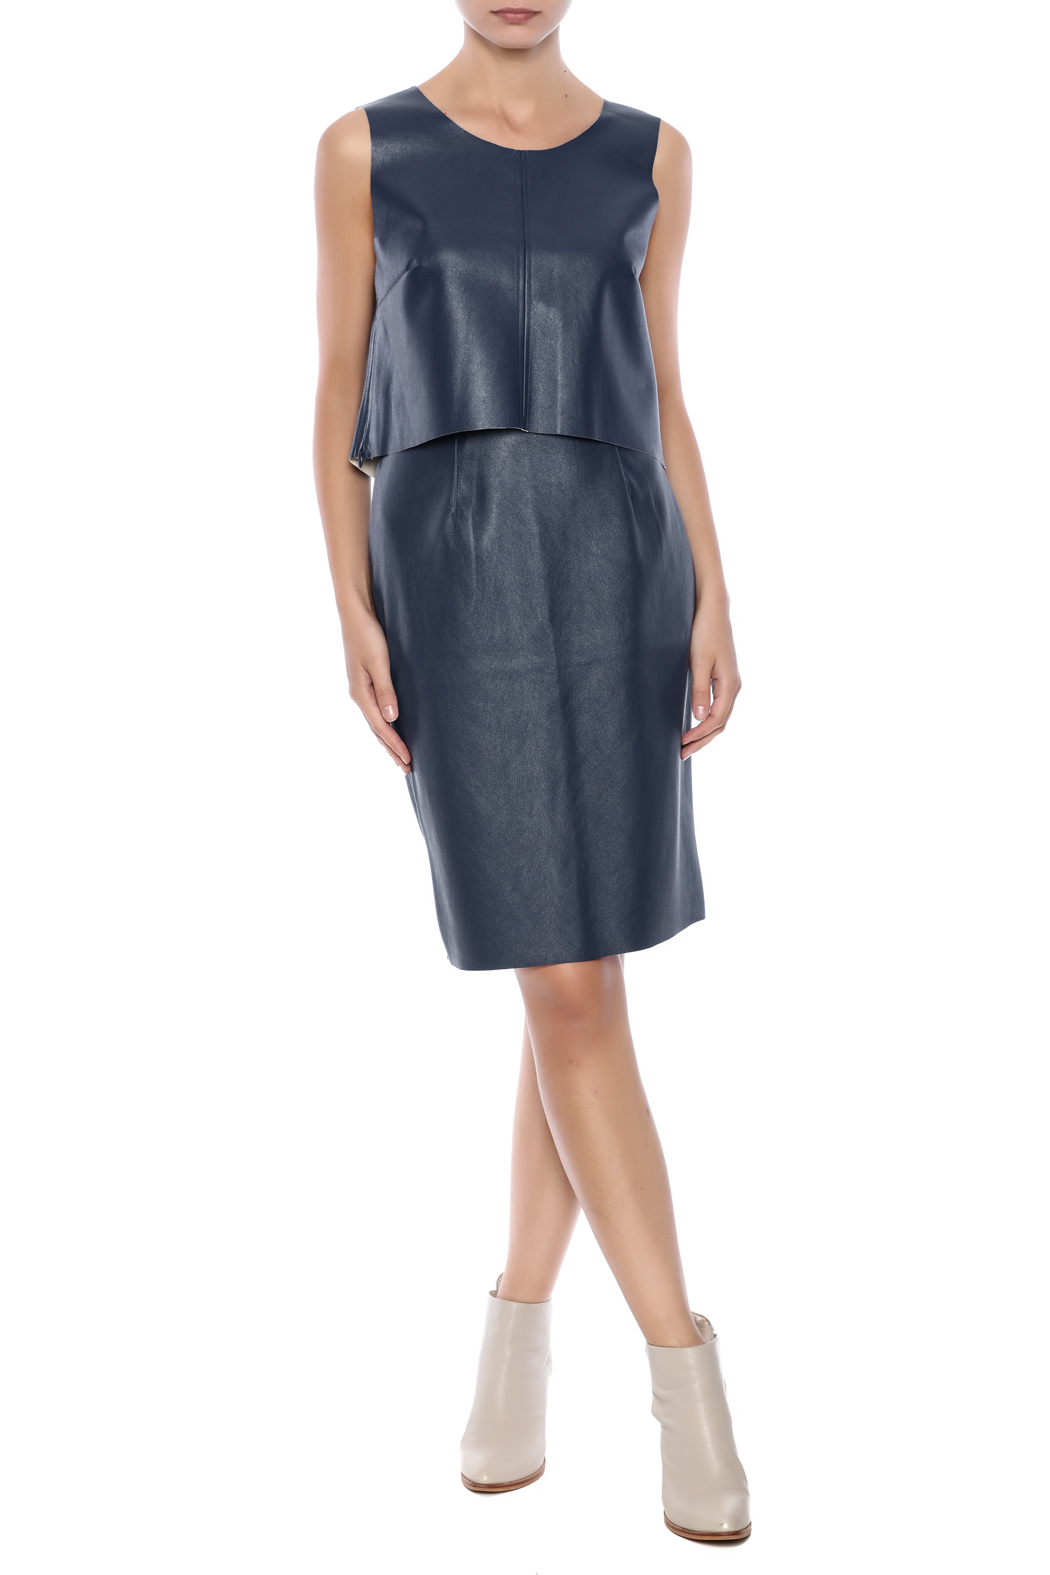 loveriche blue faux leather skirt from florida by